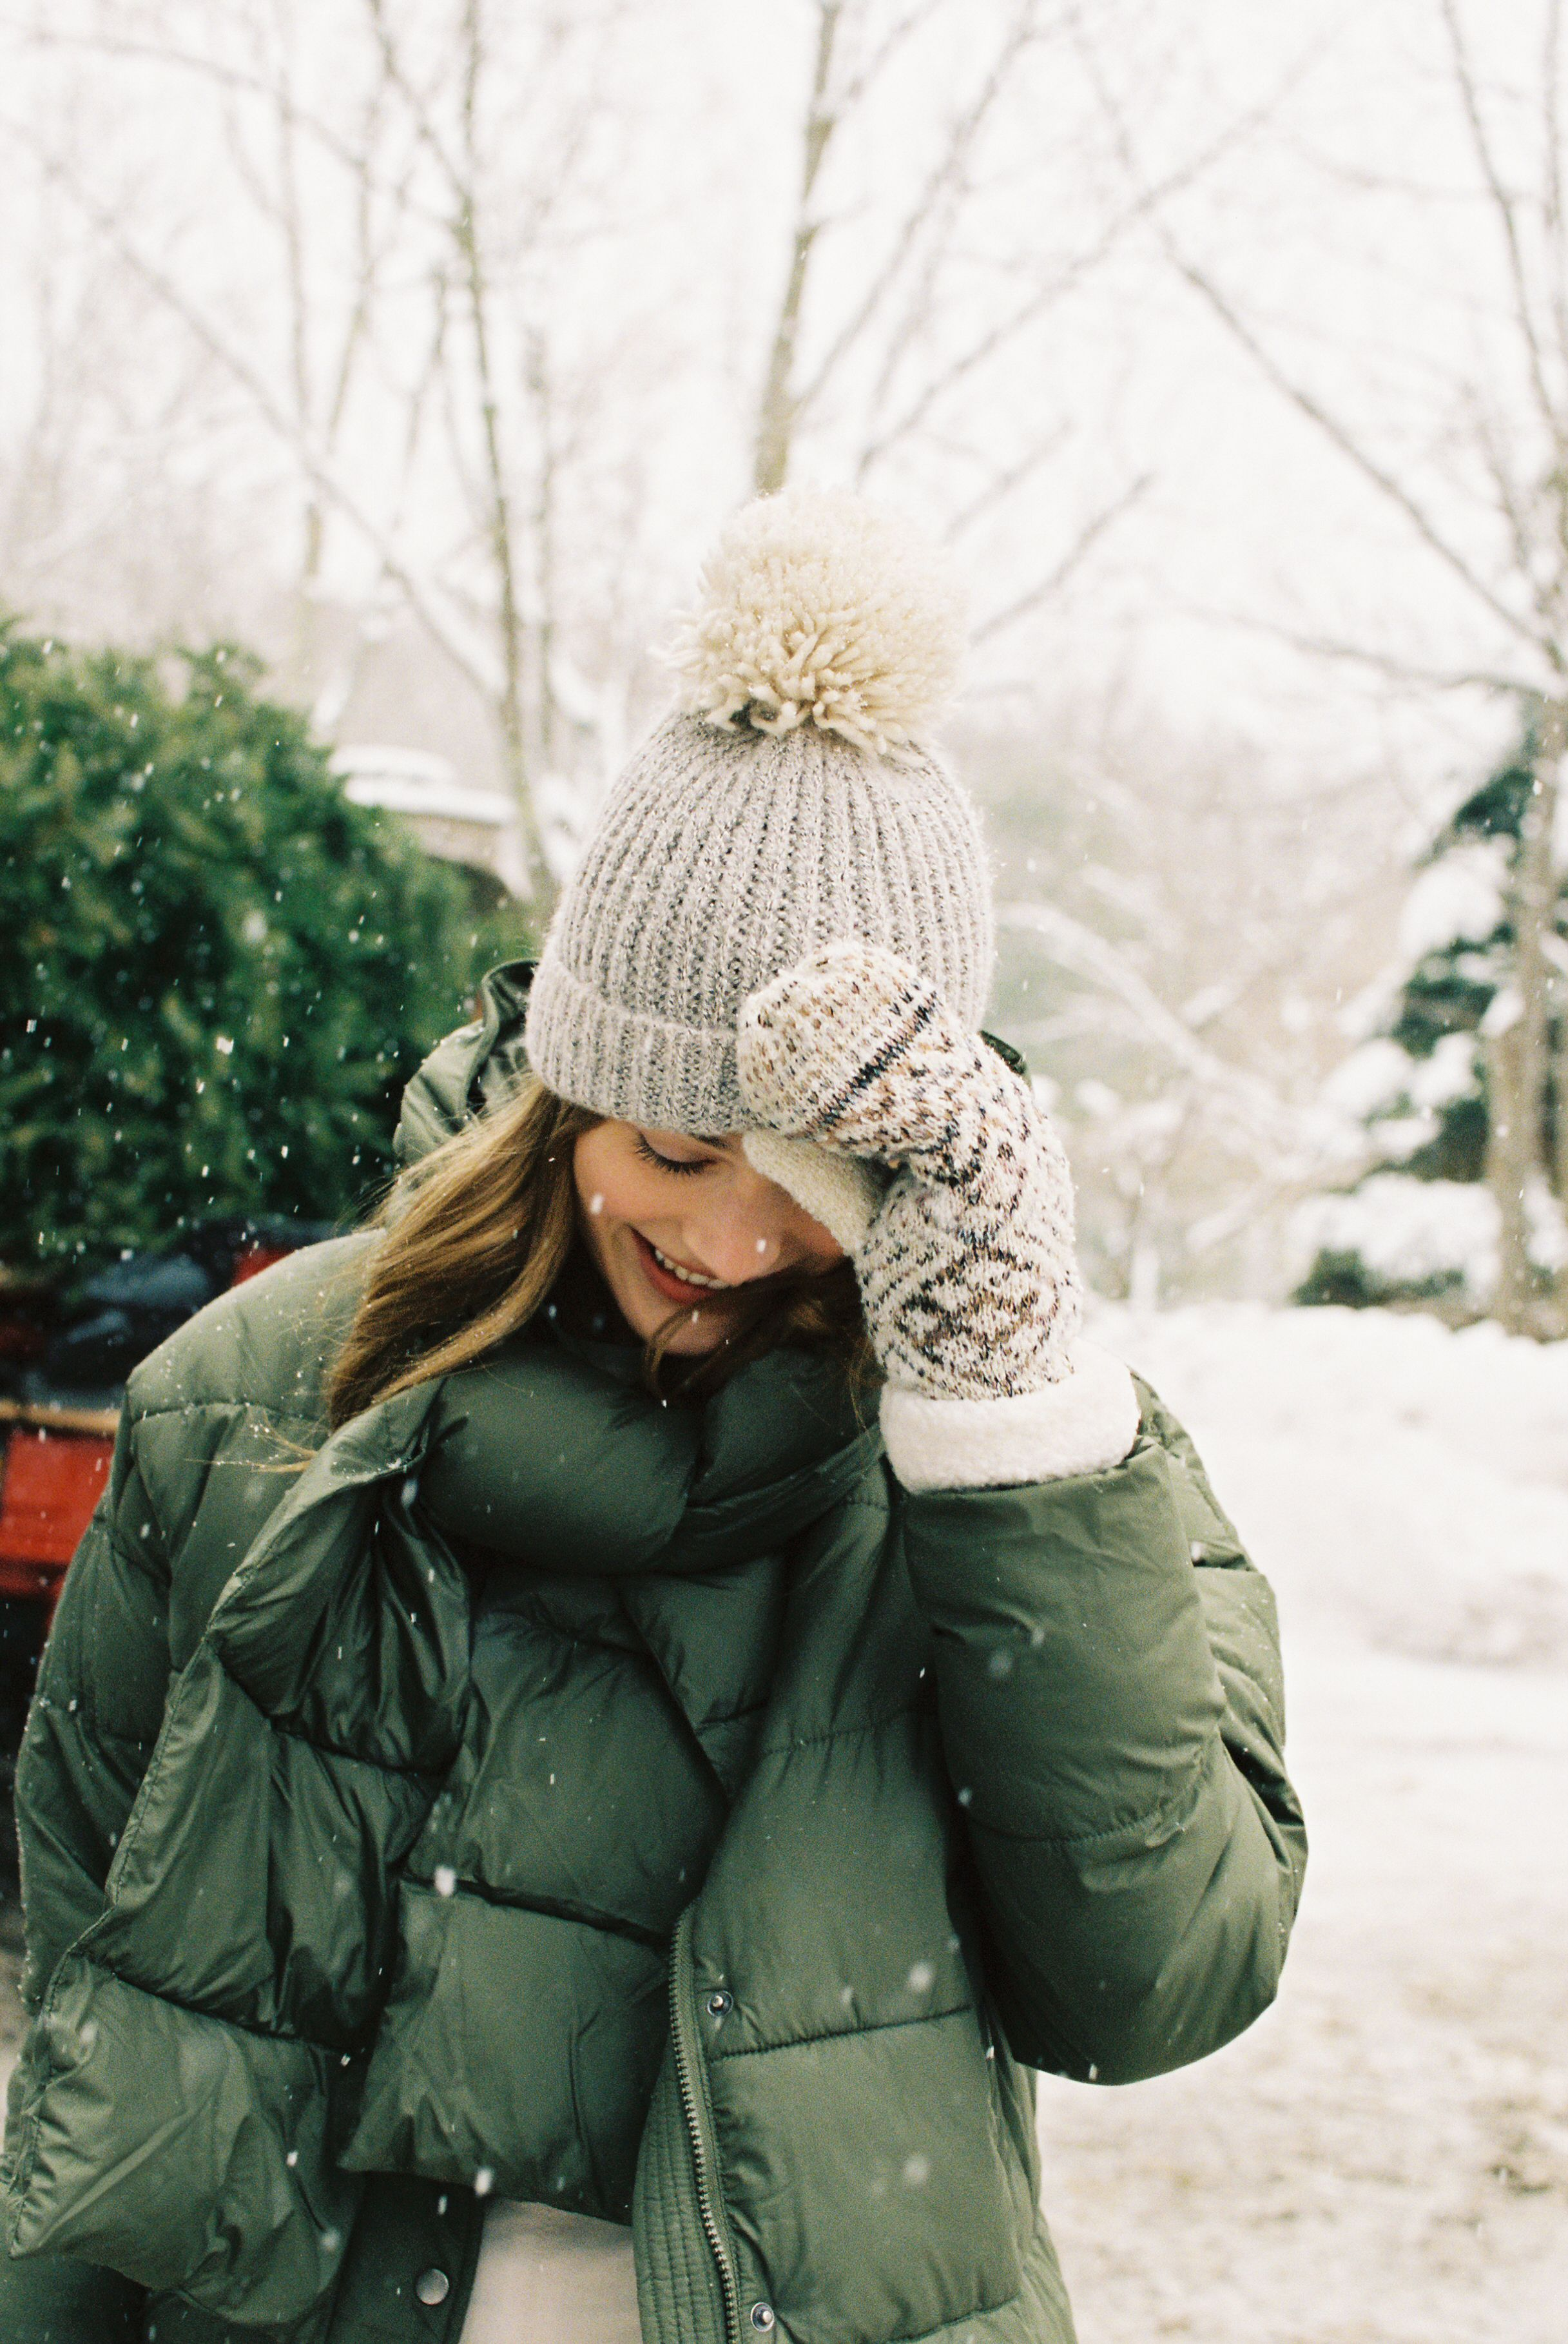 Cayuga Puffer Jacket Cozy Winter Outfit Ideas Winter Outfits Jacket Outfit Women Puffer Jacket Outfit [ 3637 x 2433 Pixel ]